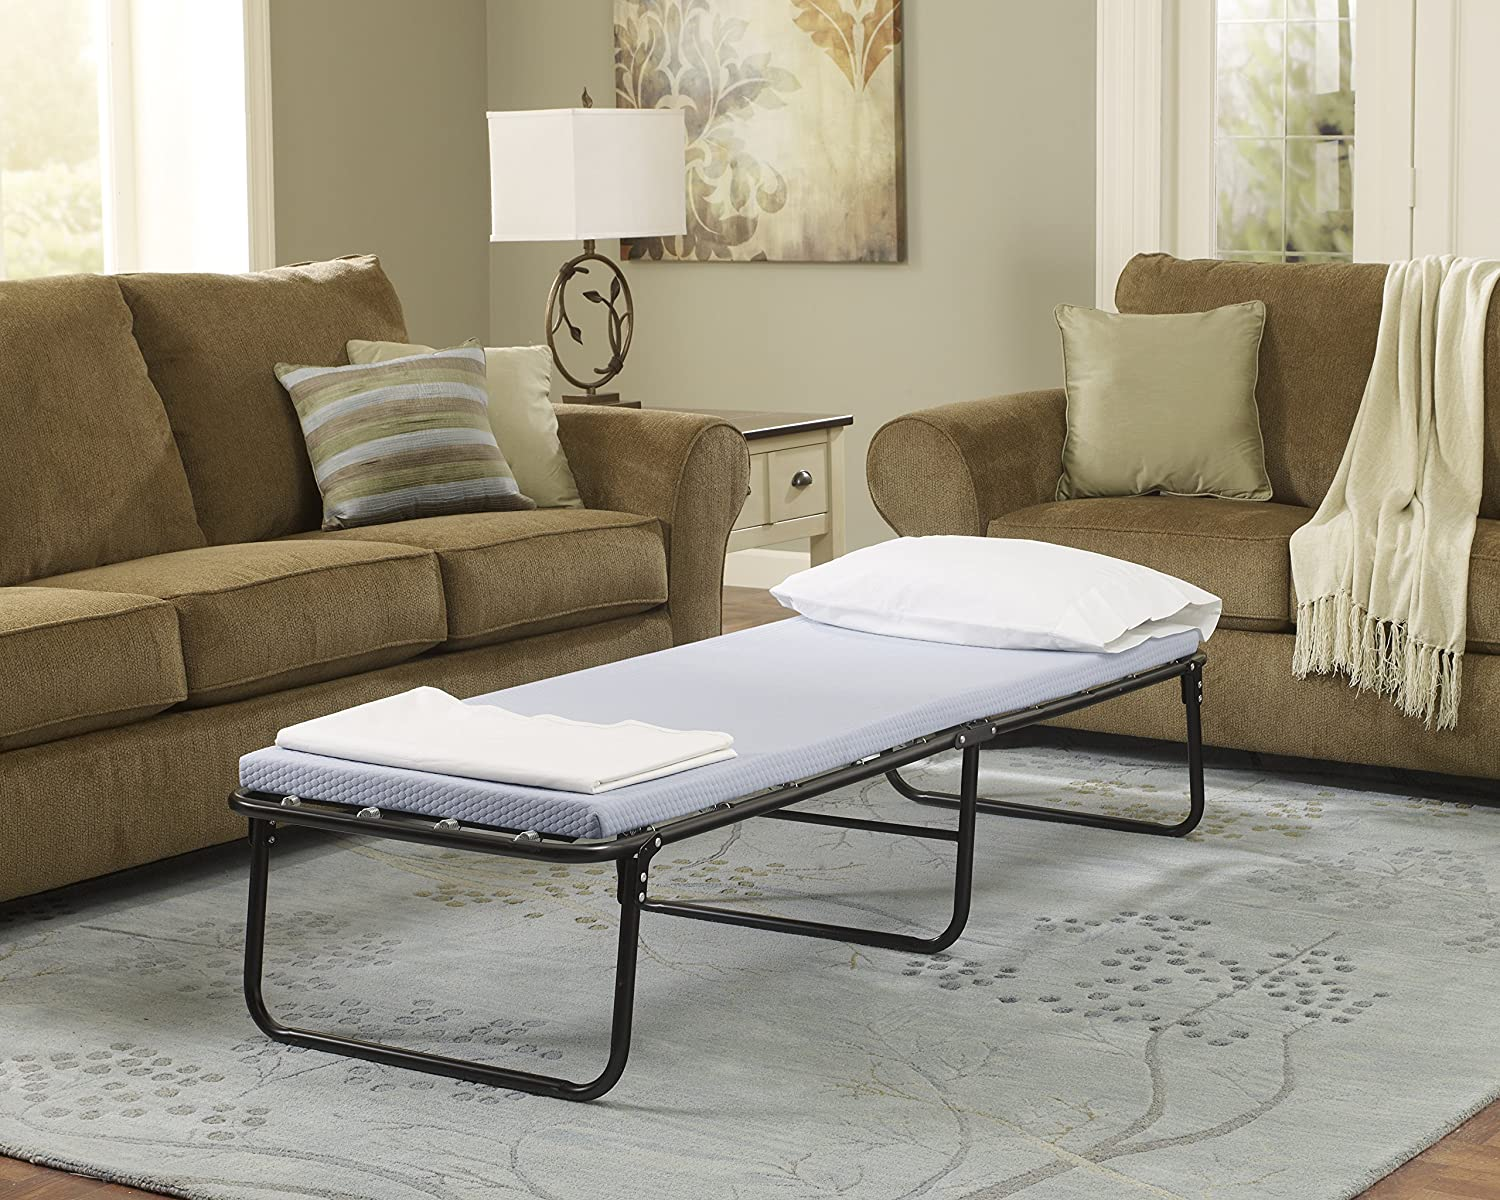 be breathable bed uk home kitchen value fold up dp with co amazon mattress jay airflow folding